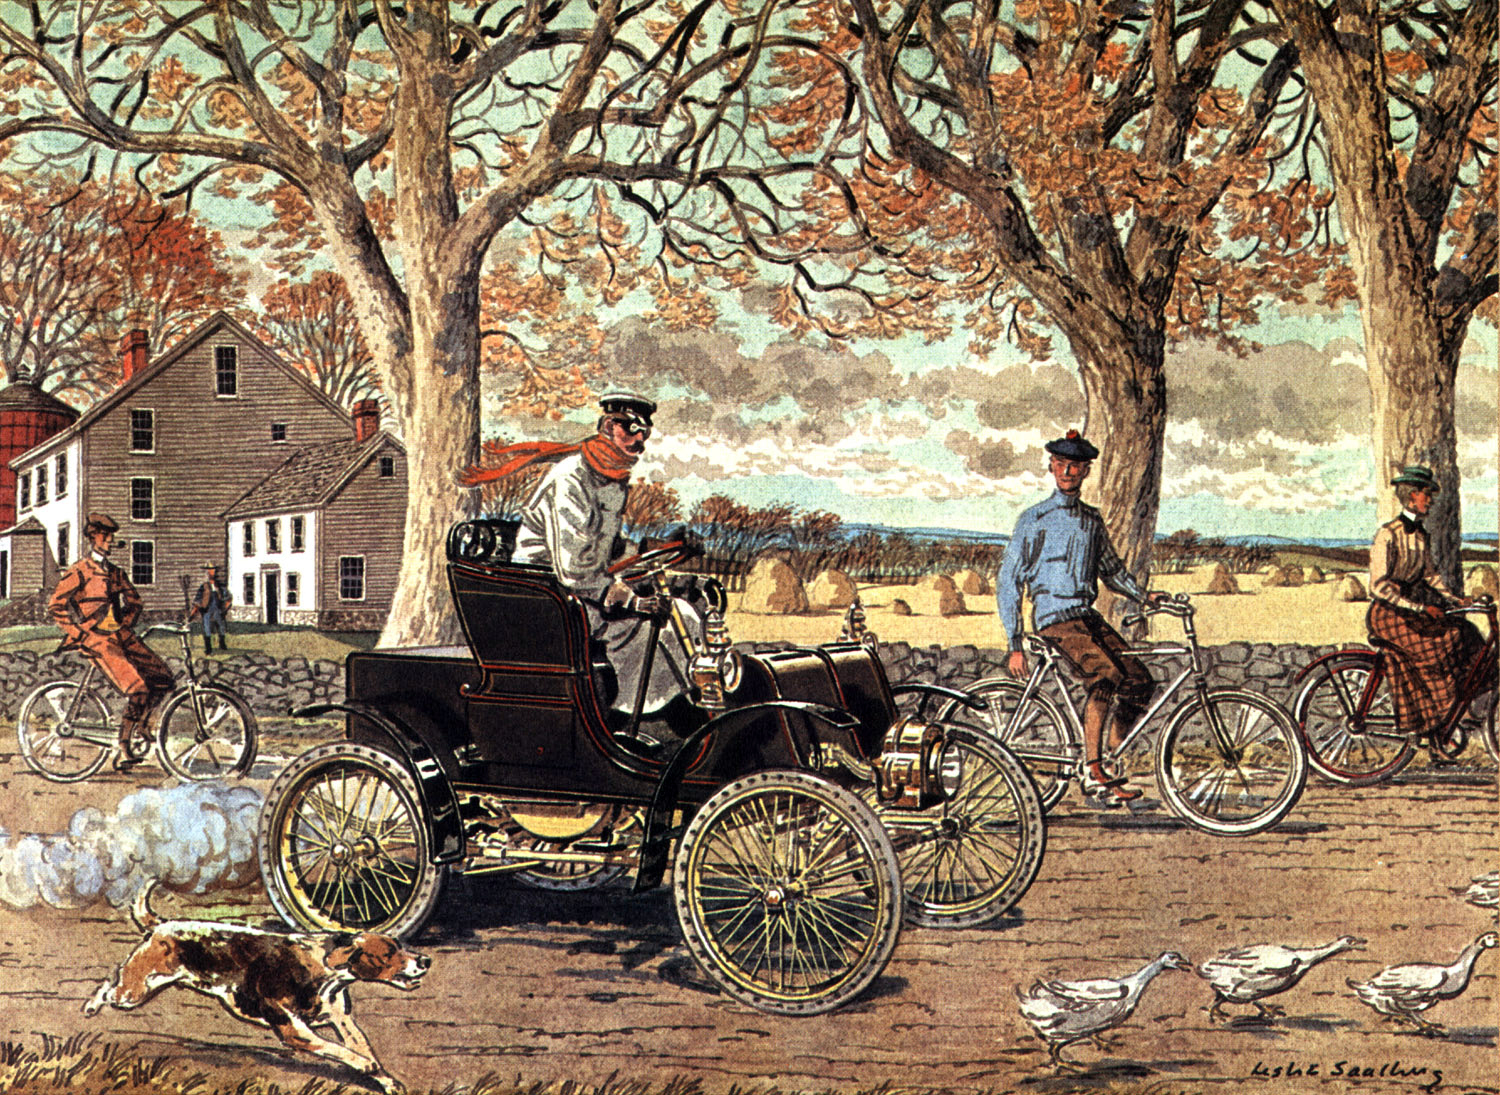 1901 Packard - Illustrated by Leslie Saalburg